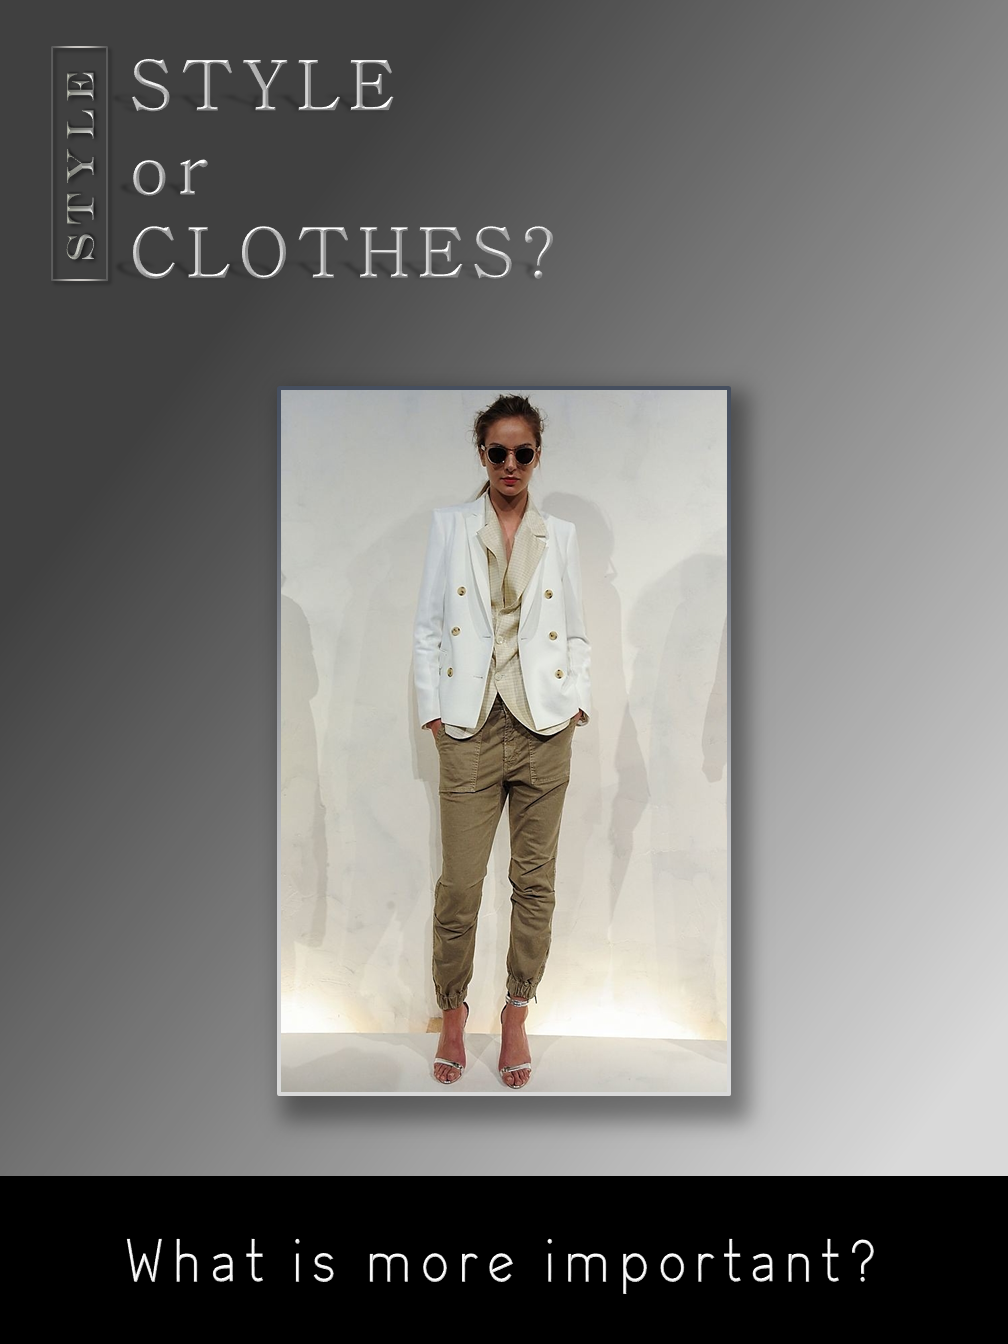 Style or Clothes?